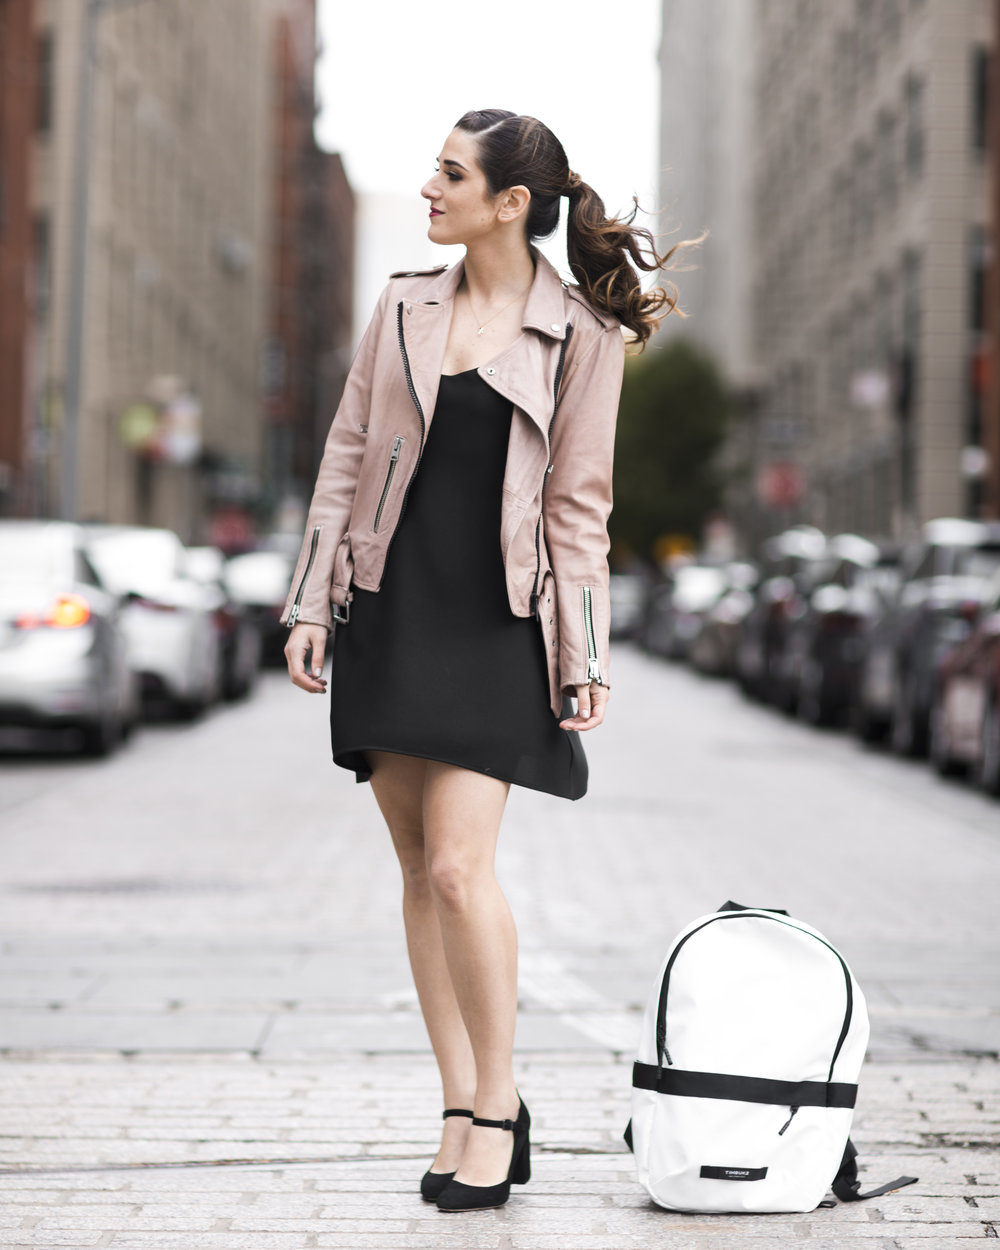 The Perfect Travel Backpack Timbuk2 Louboutins & Love Fashion Blog Esther Santer NYC Street Style Blogger Outfit OOTD Trendy All Saints Blush Pink Leather Backpack Black Pumps Shoes Heels Slip Dress Hair Braids Ponytail Women Girls Inspo Vacation Bag.jpg